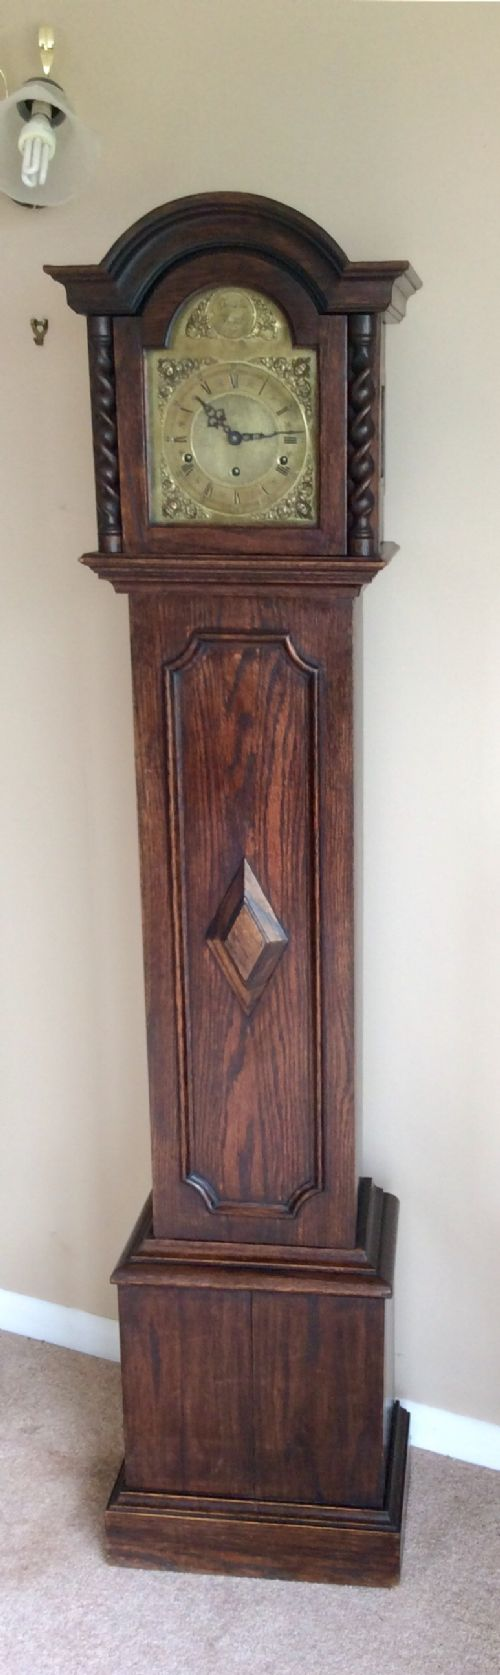 late 19th c small grandfather or grandmother longcase clock with mellow westminster chimes